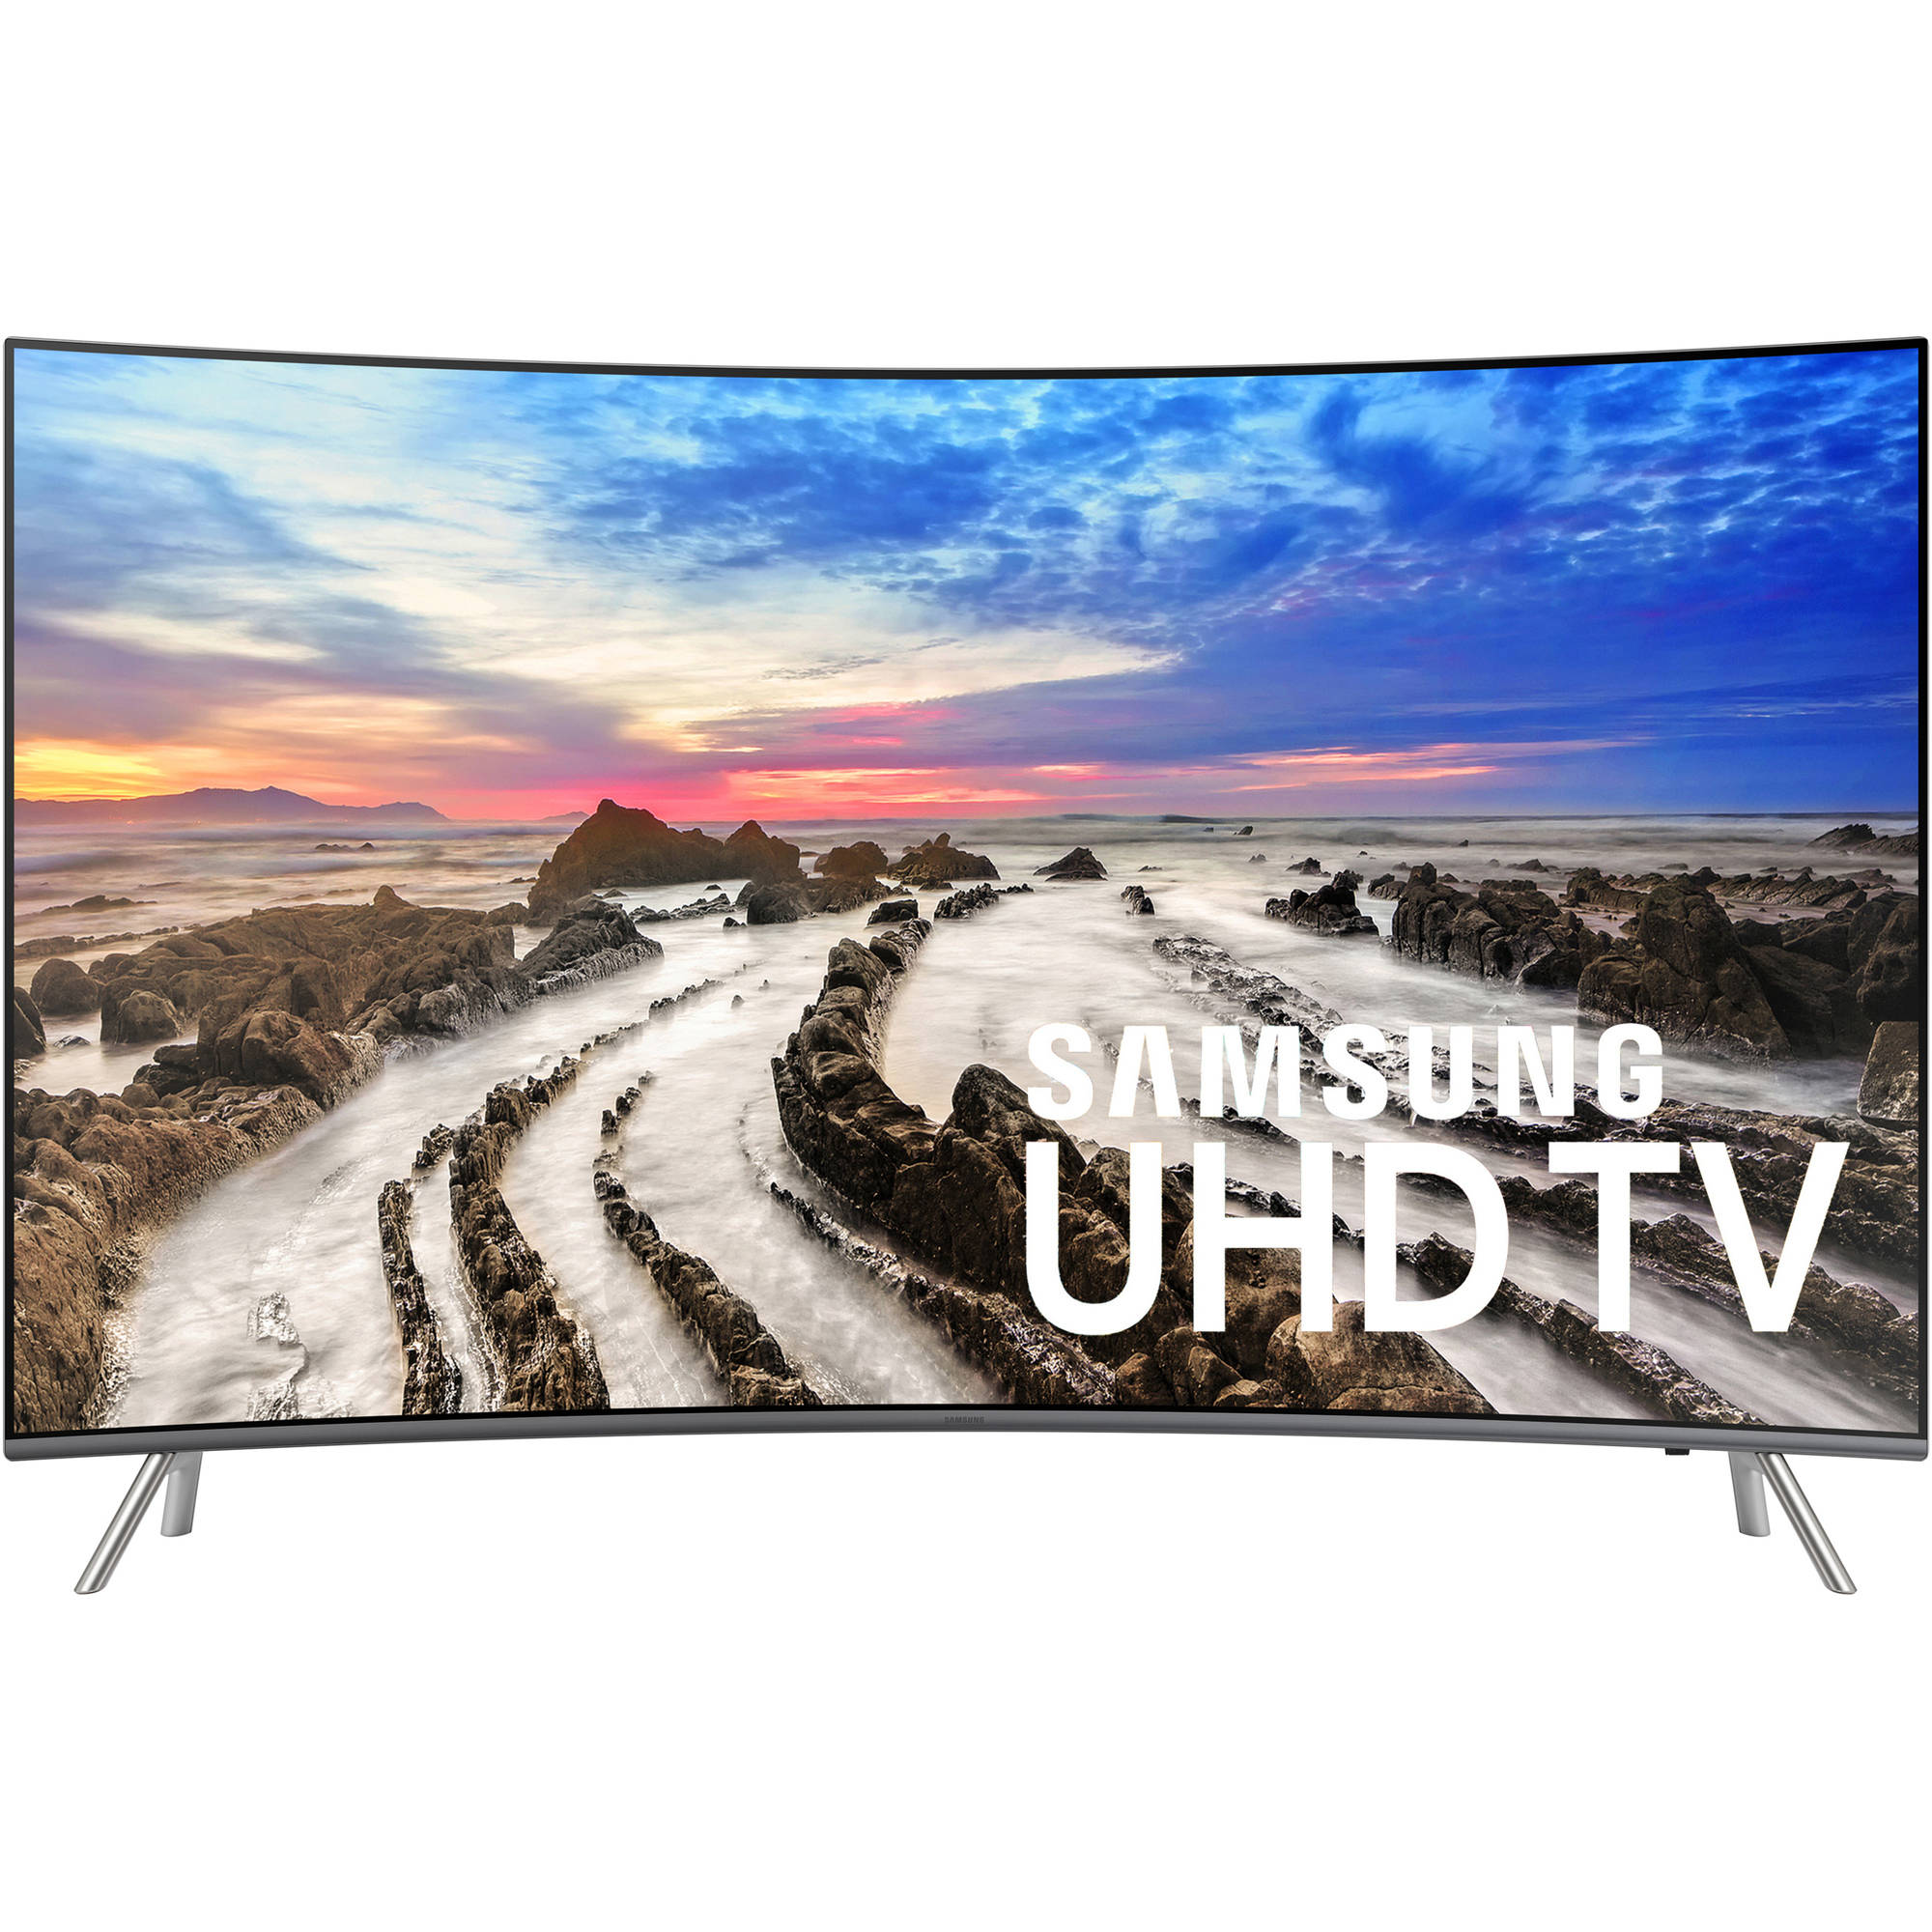 "SAMSUNG 65"" class curved 4k (2160P) Ultra HD Smart LED TV (UN65MU8500FXZA)"